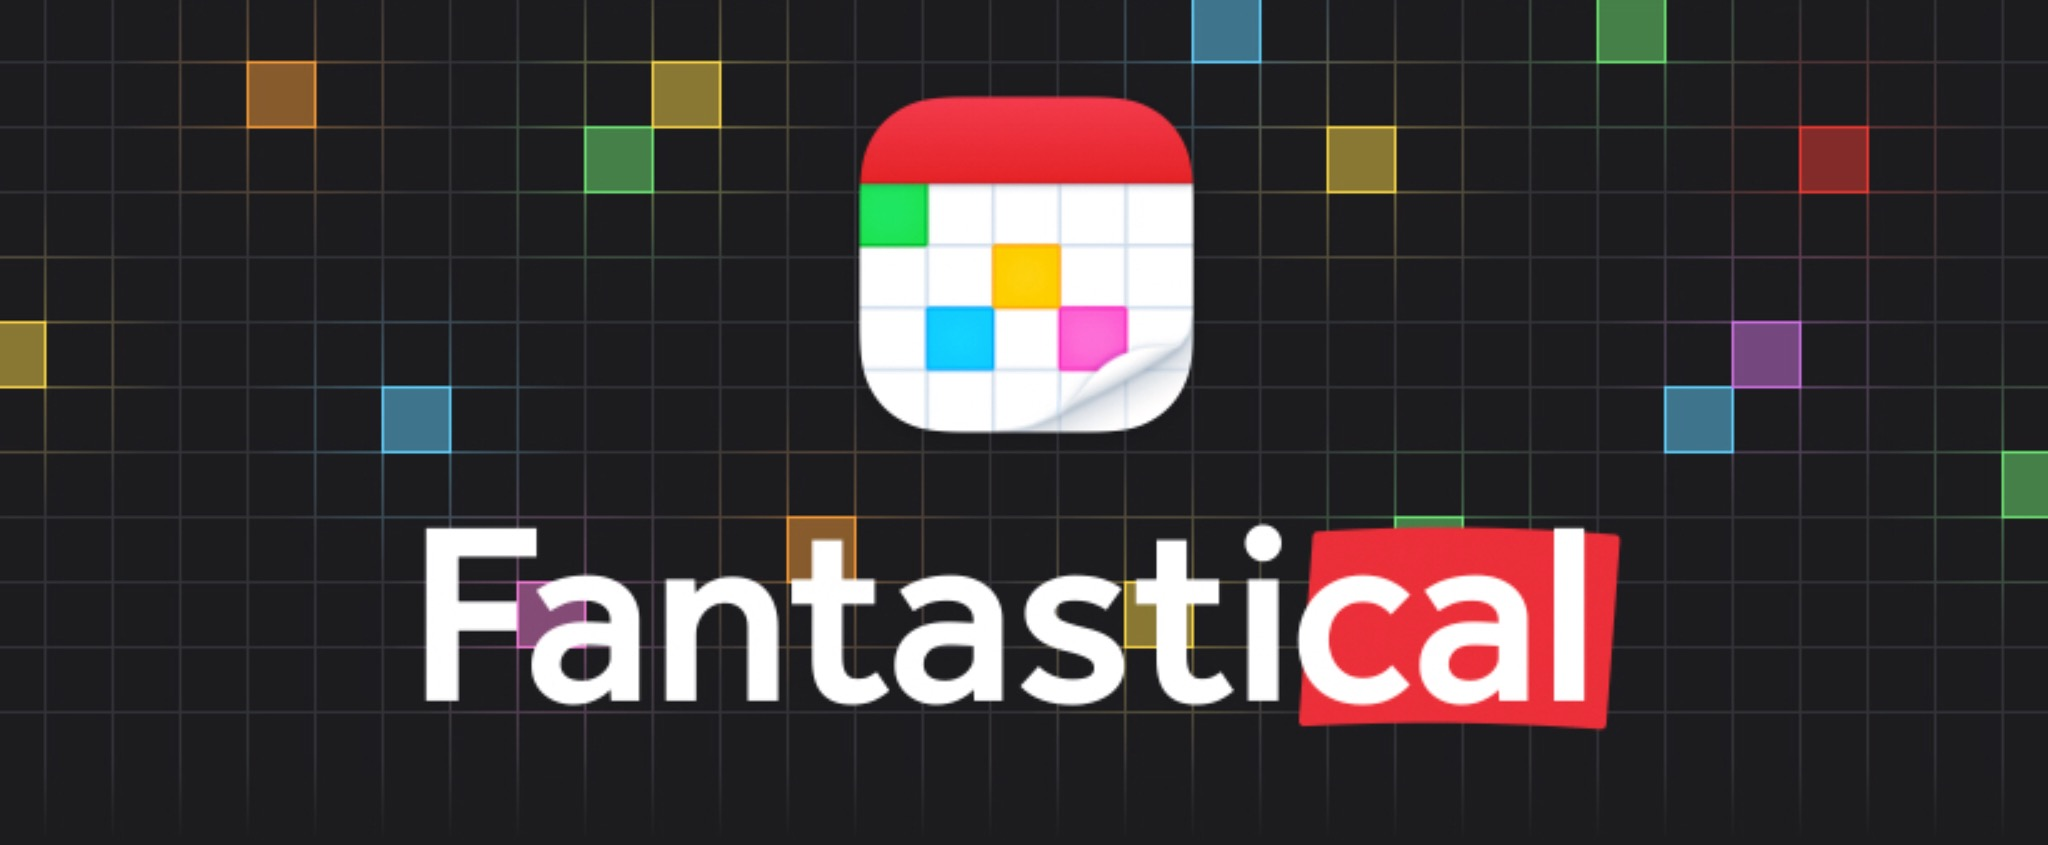 app-subscriptions-worth-paying-for-fantastical